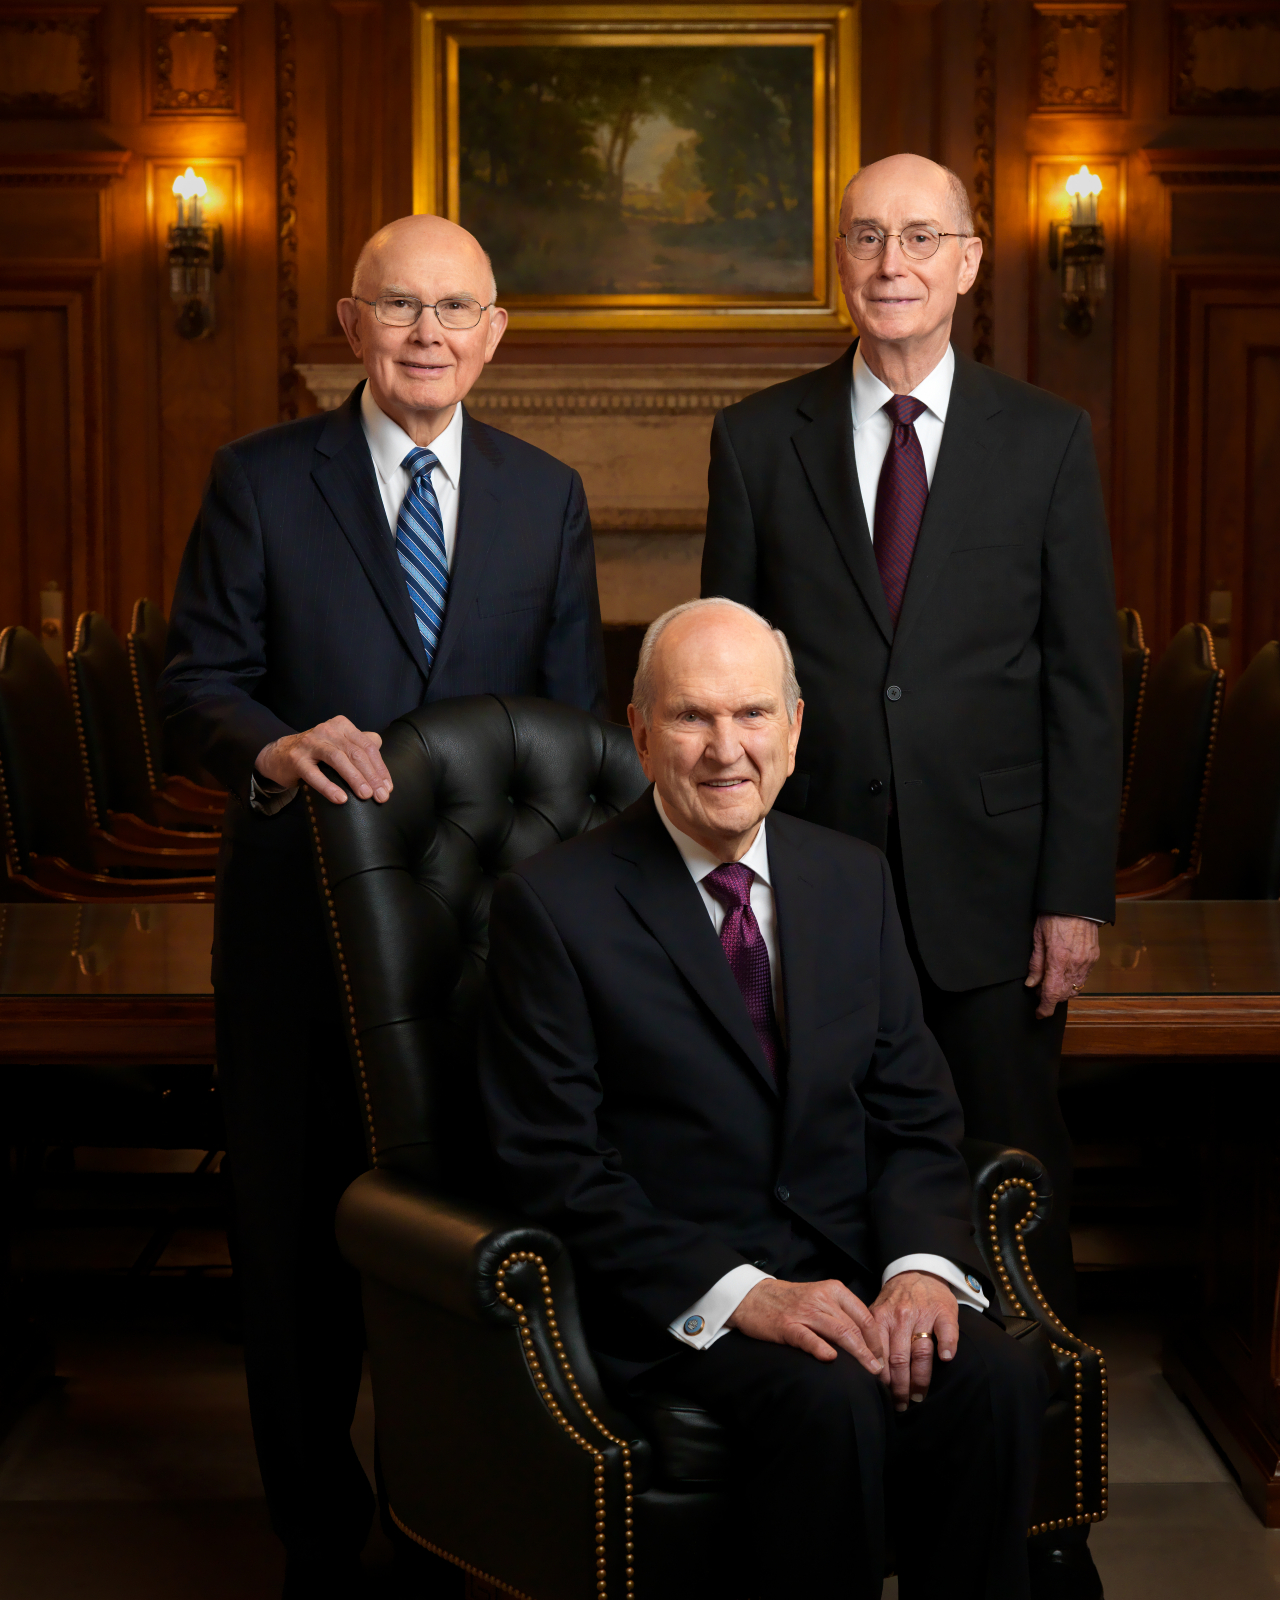 the first presidency 2018